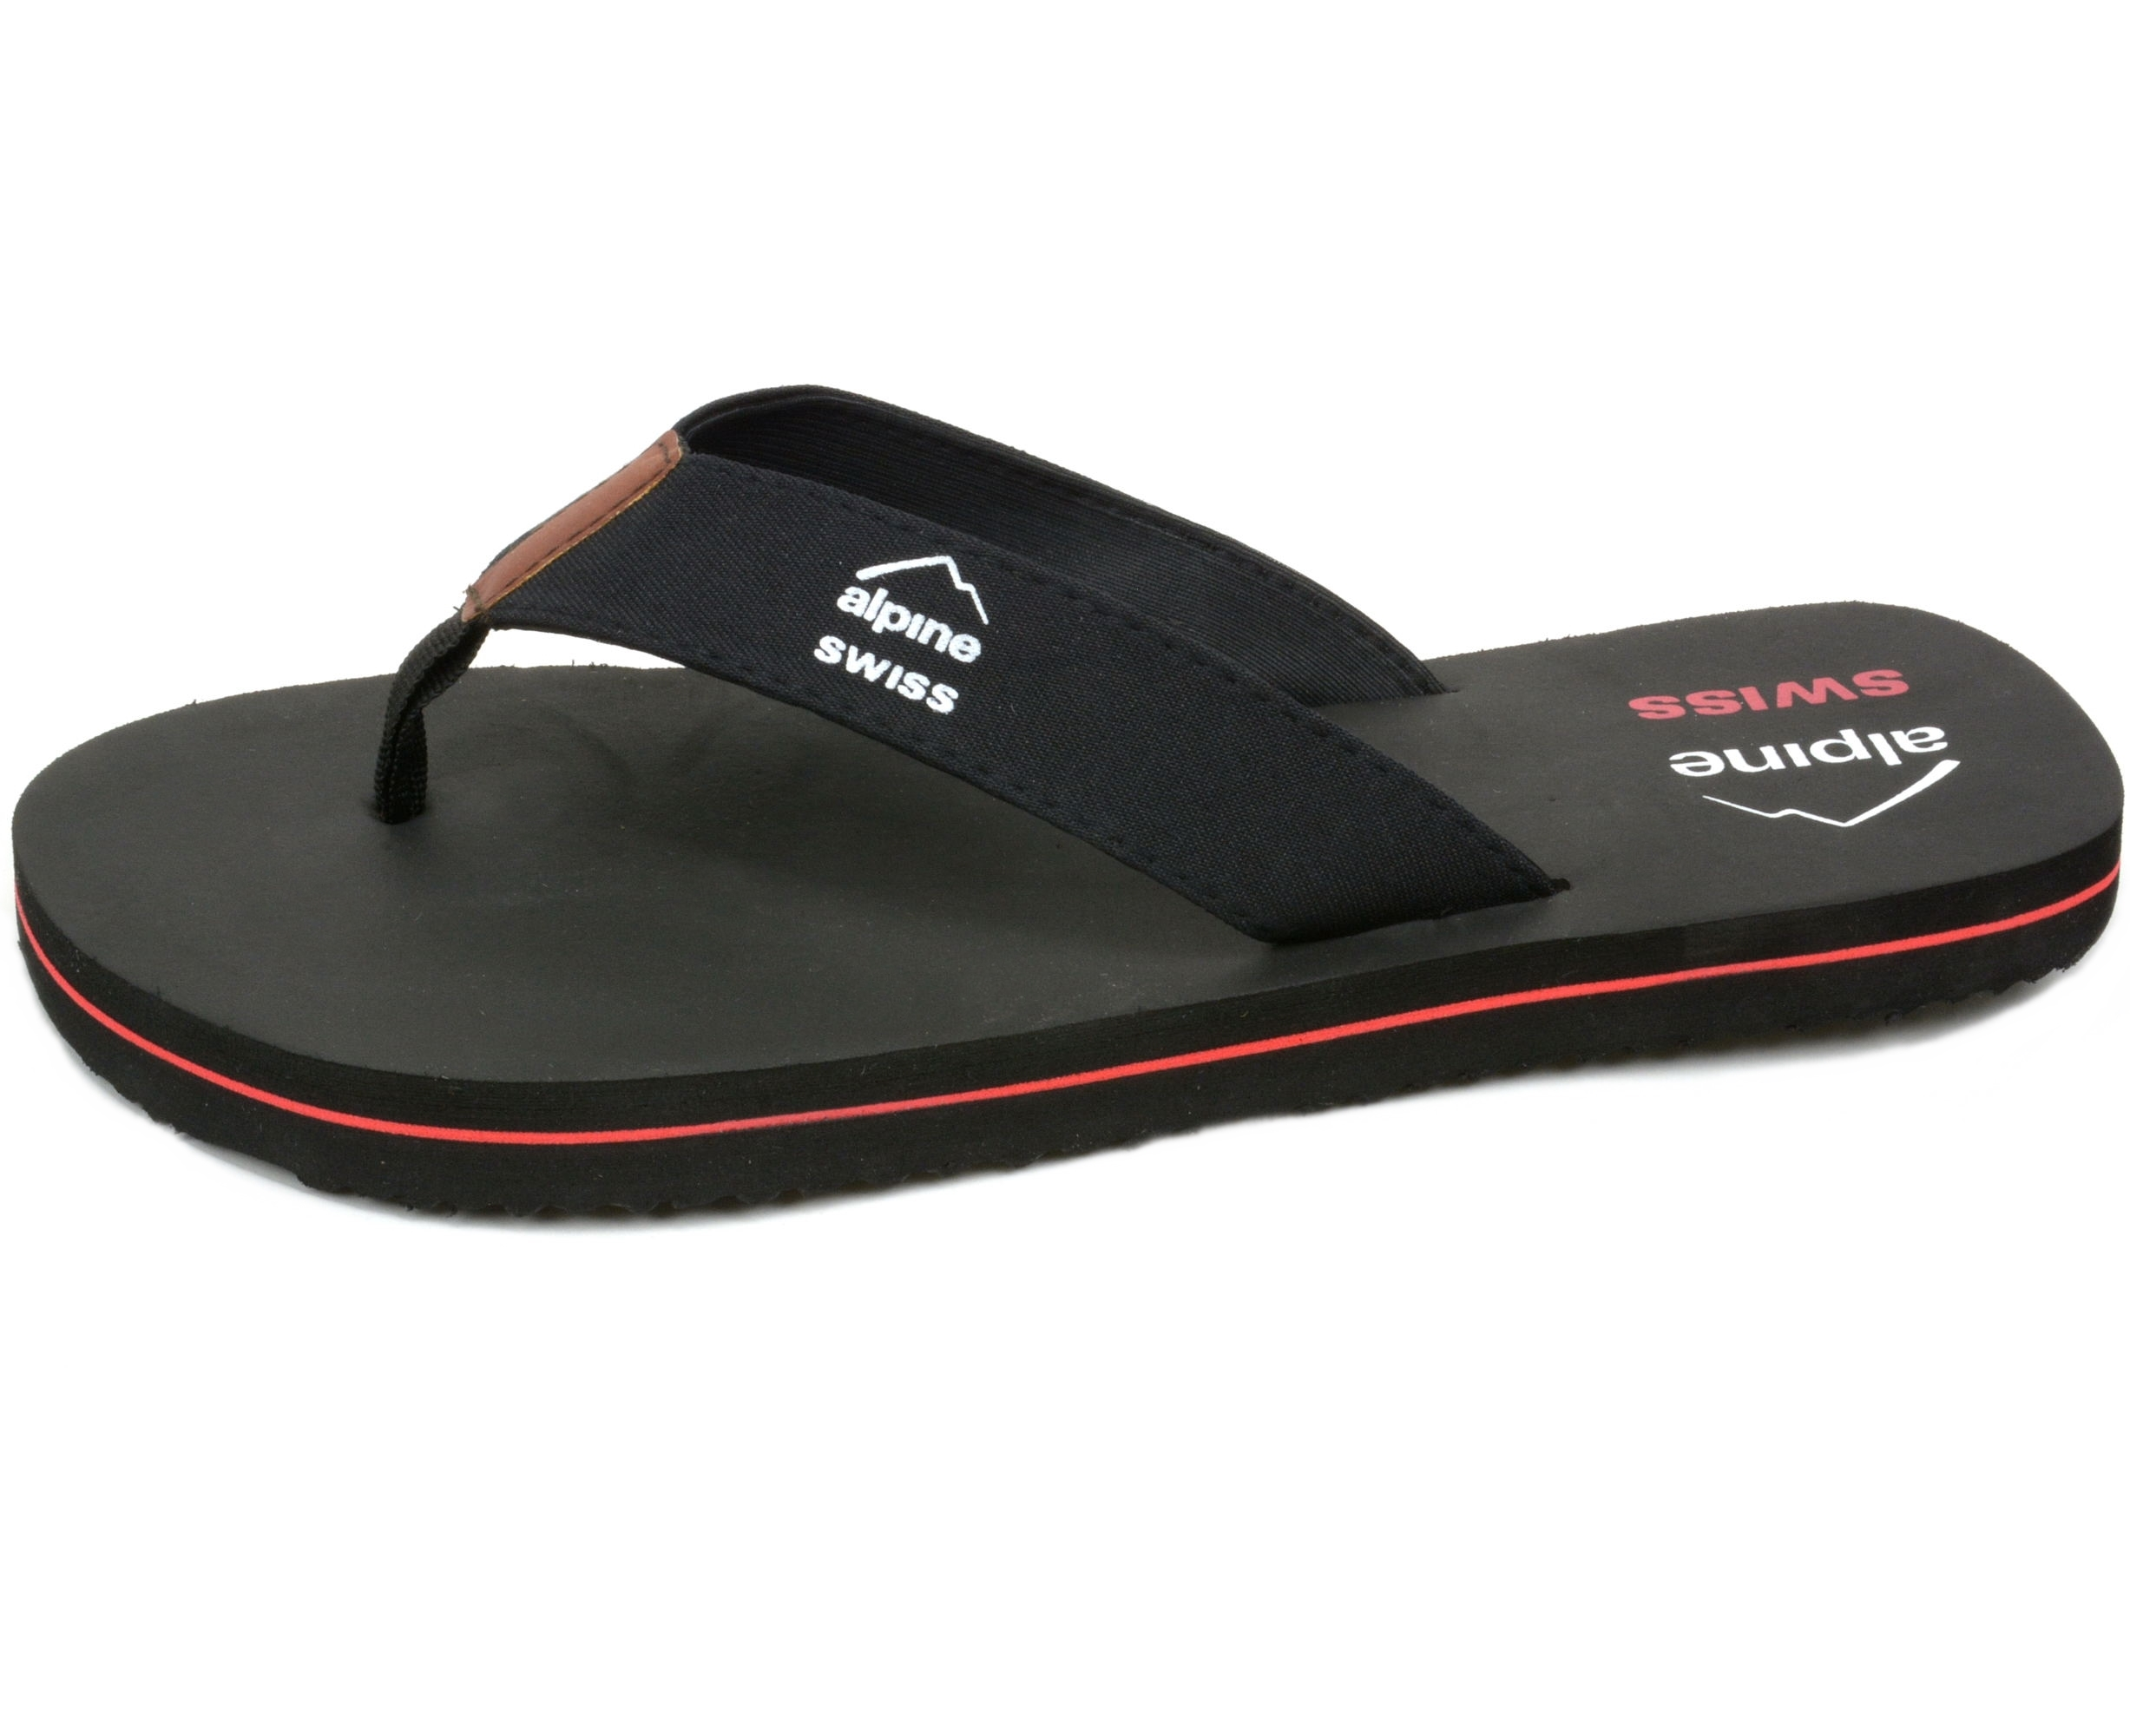 Alpine-Swiss-Mens-Flip-Flops-Beach-Sandals-Lightweight-EVA-Sole-Comfort-Thongs thumbnail 13